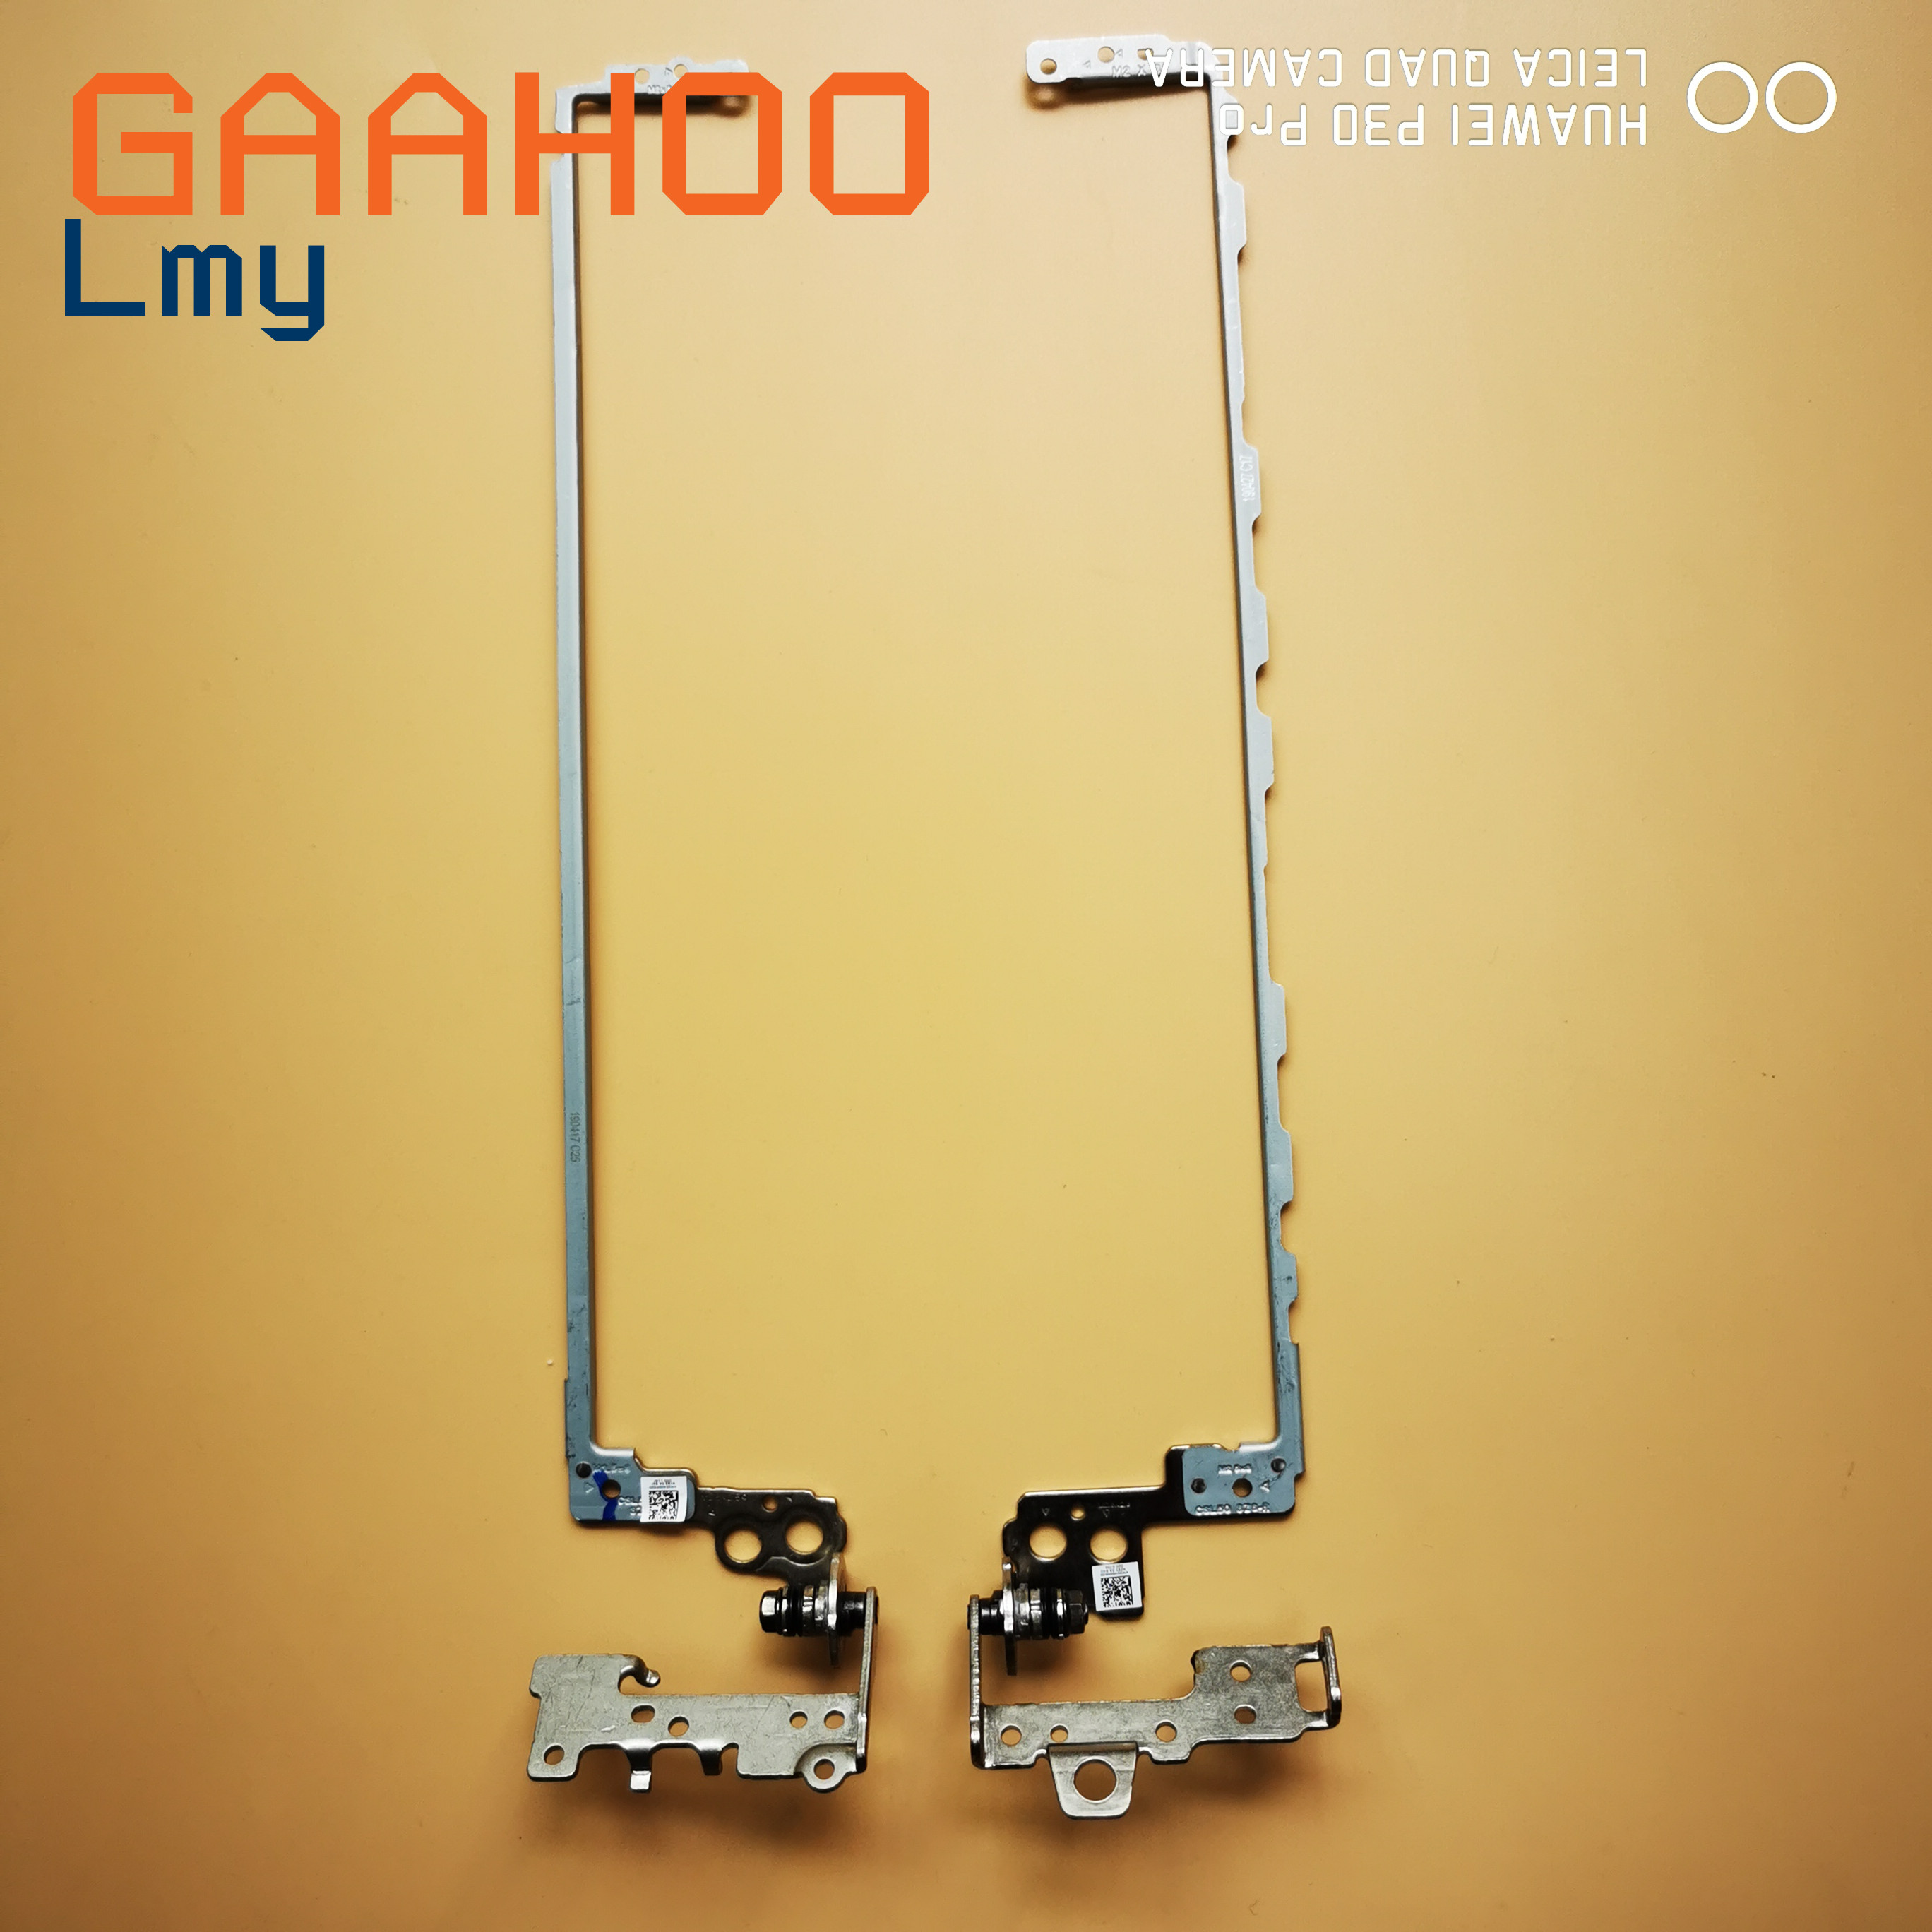 Brand New Laptop Lcd Hinges For HP 250 G6 255 G6 TPN-C129 C130 15-BW 15-BS 15T-BR 15T-BS 15Z-BW Series laptop R & L